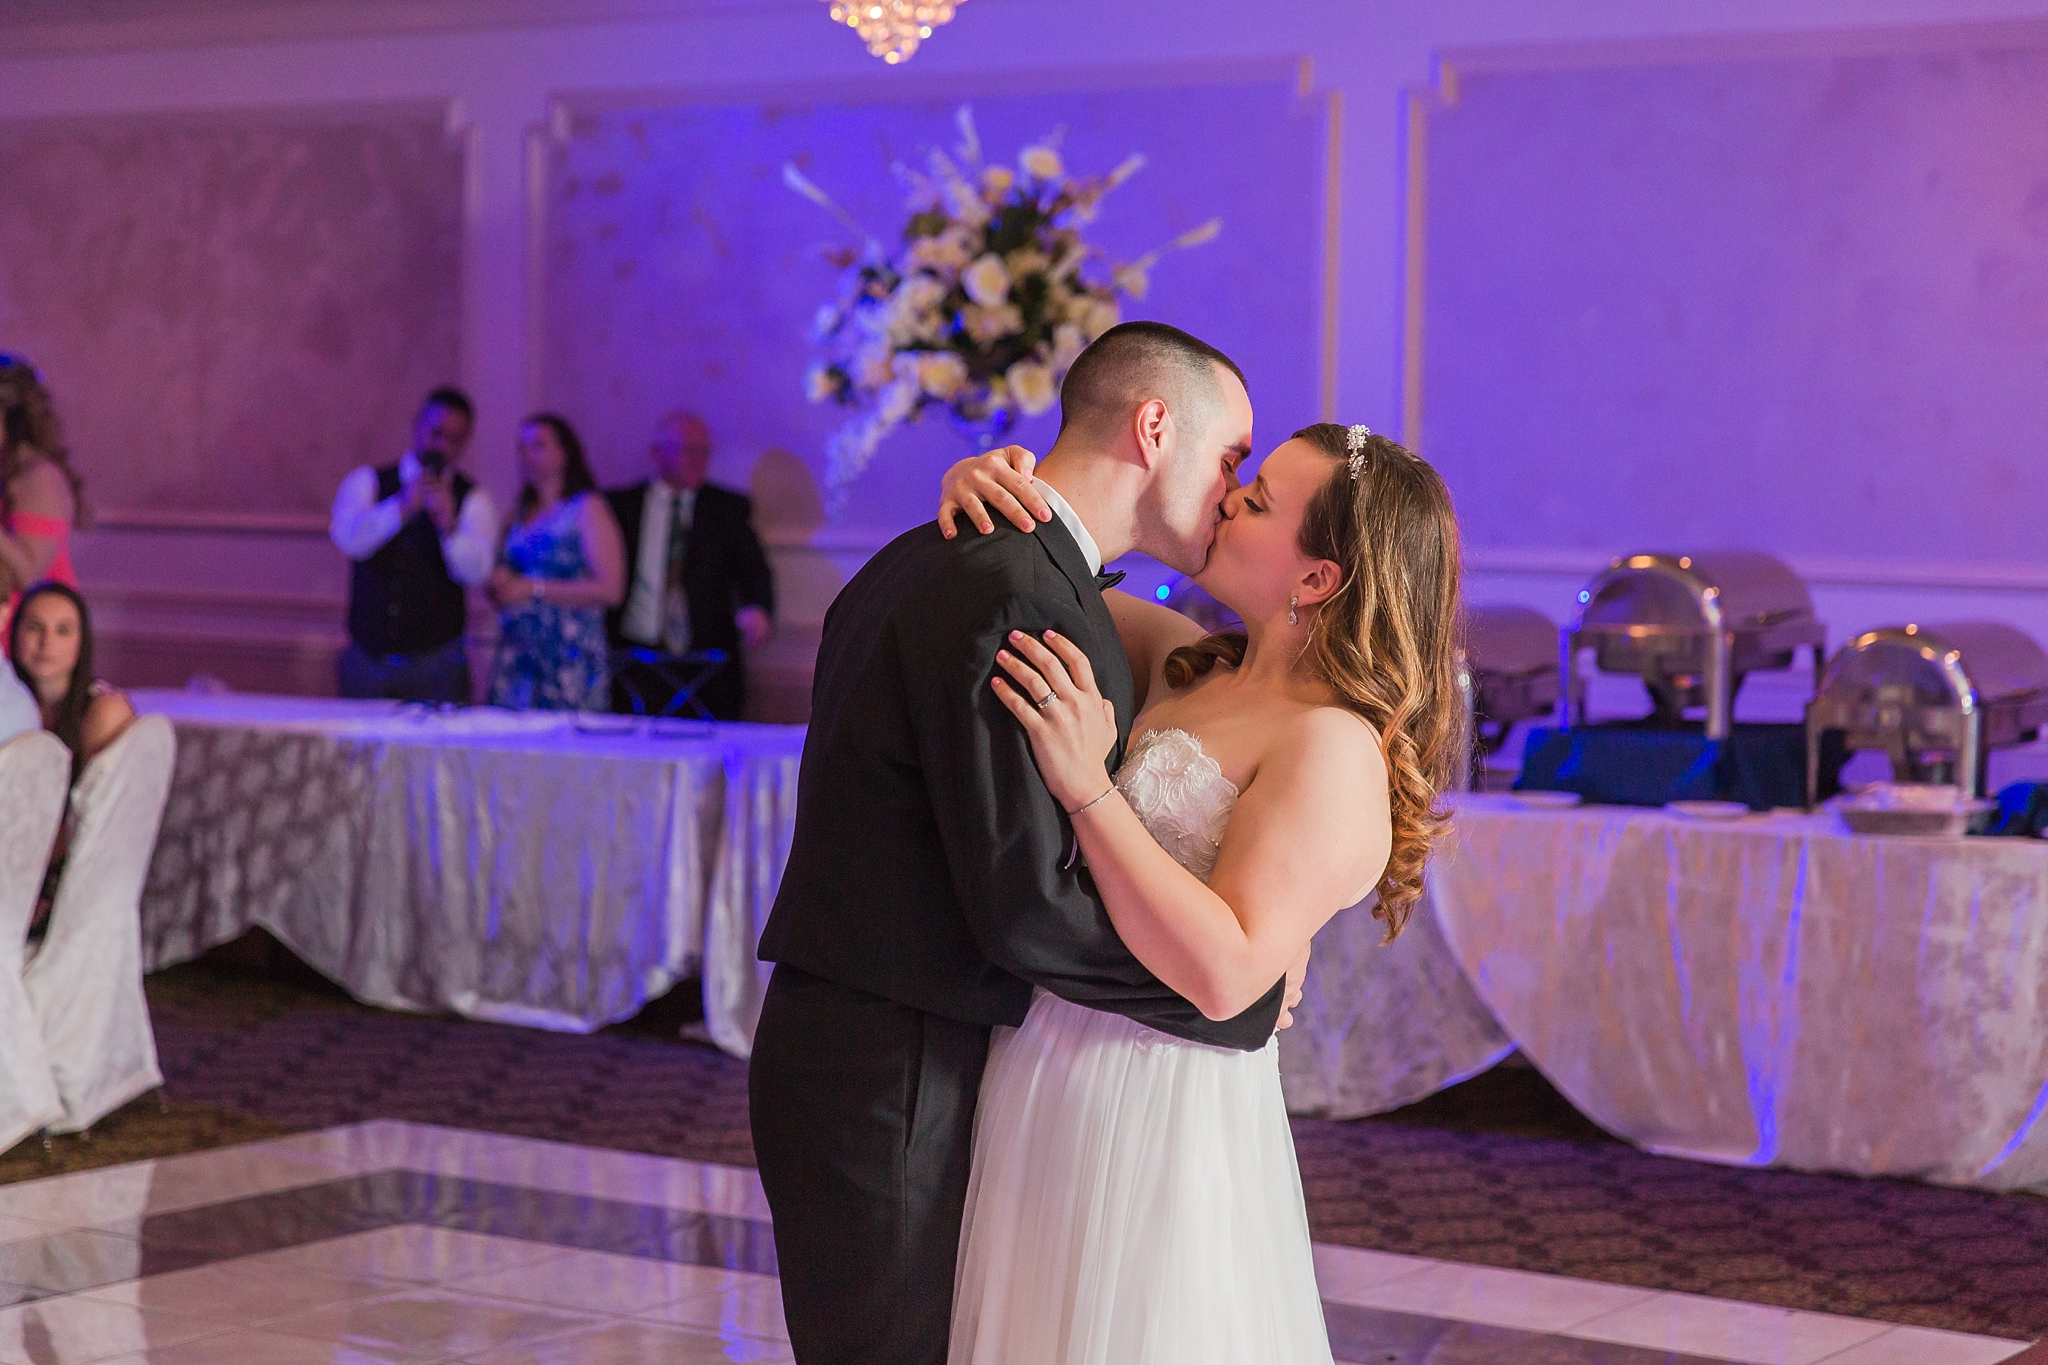 romantic-artful-candid-wedding-photos-in-st-clair-shores-at-the-white-house-wedding-chapel-by-courtney-carolyn-photography_0081.jpg